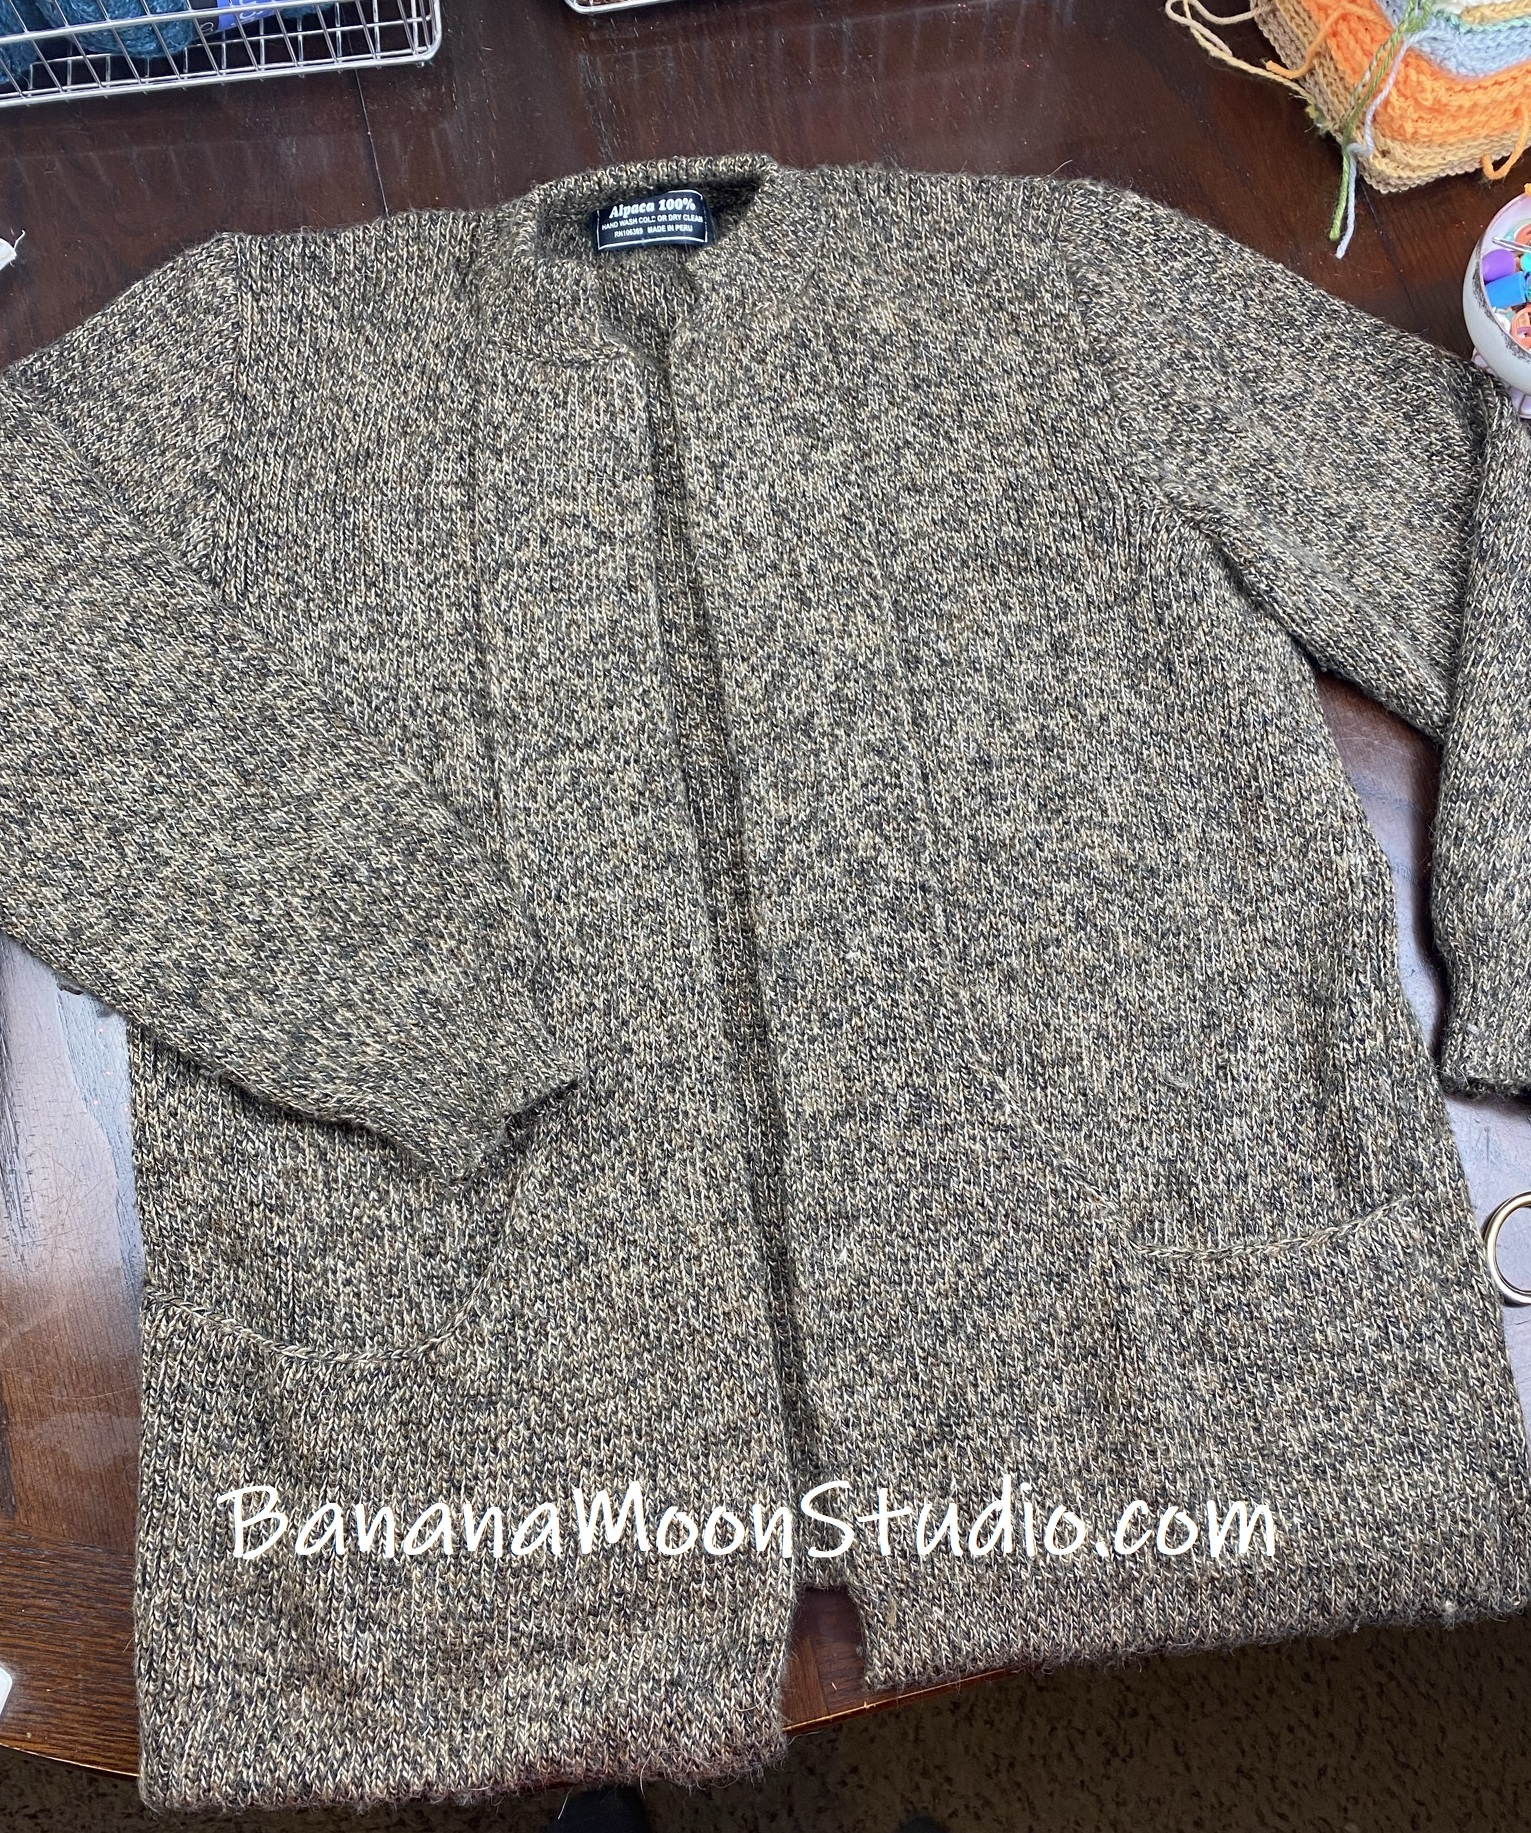 100% alpaca sweater from a thrift store. Should I unravel it? Photo tutorial from Banana Moon Studio.